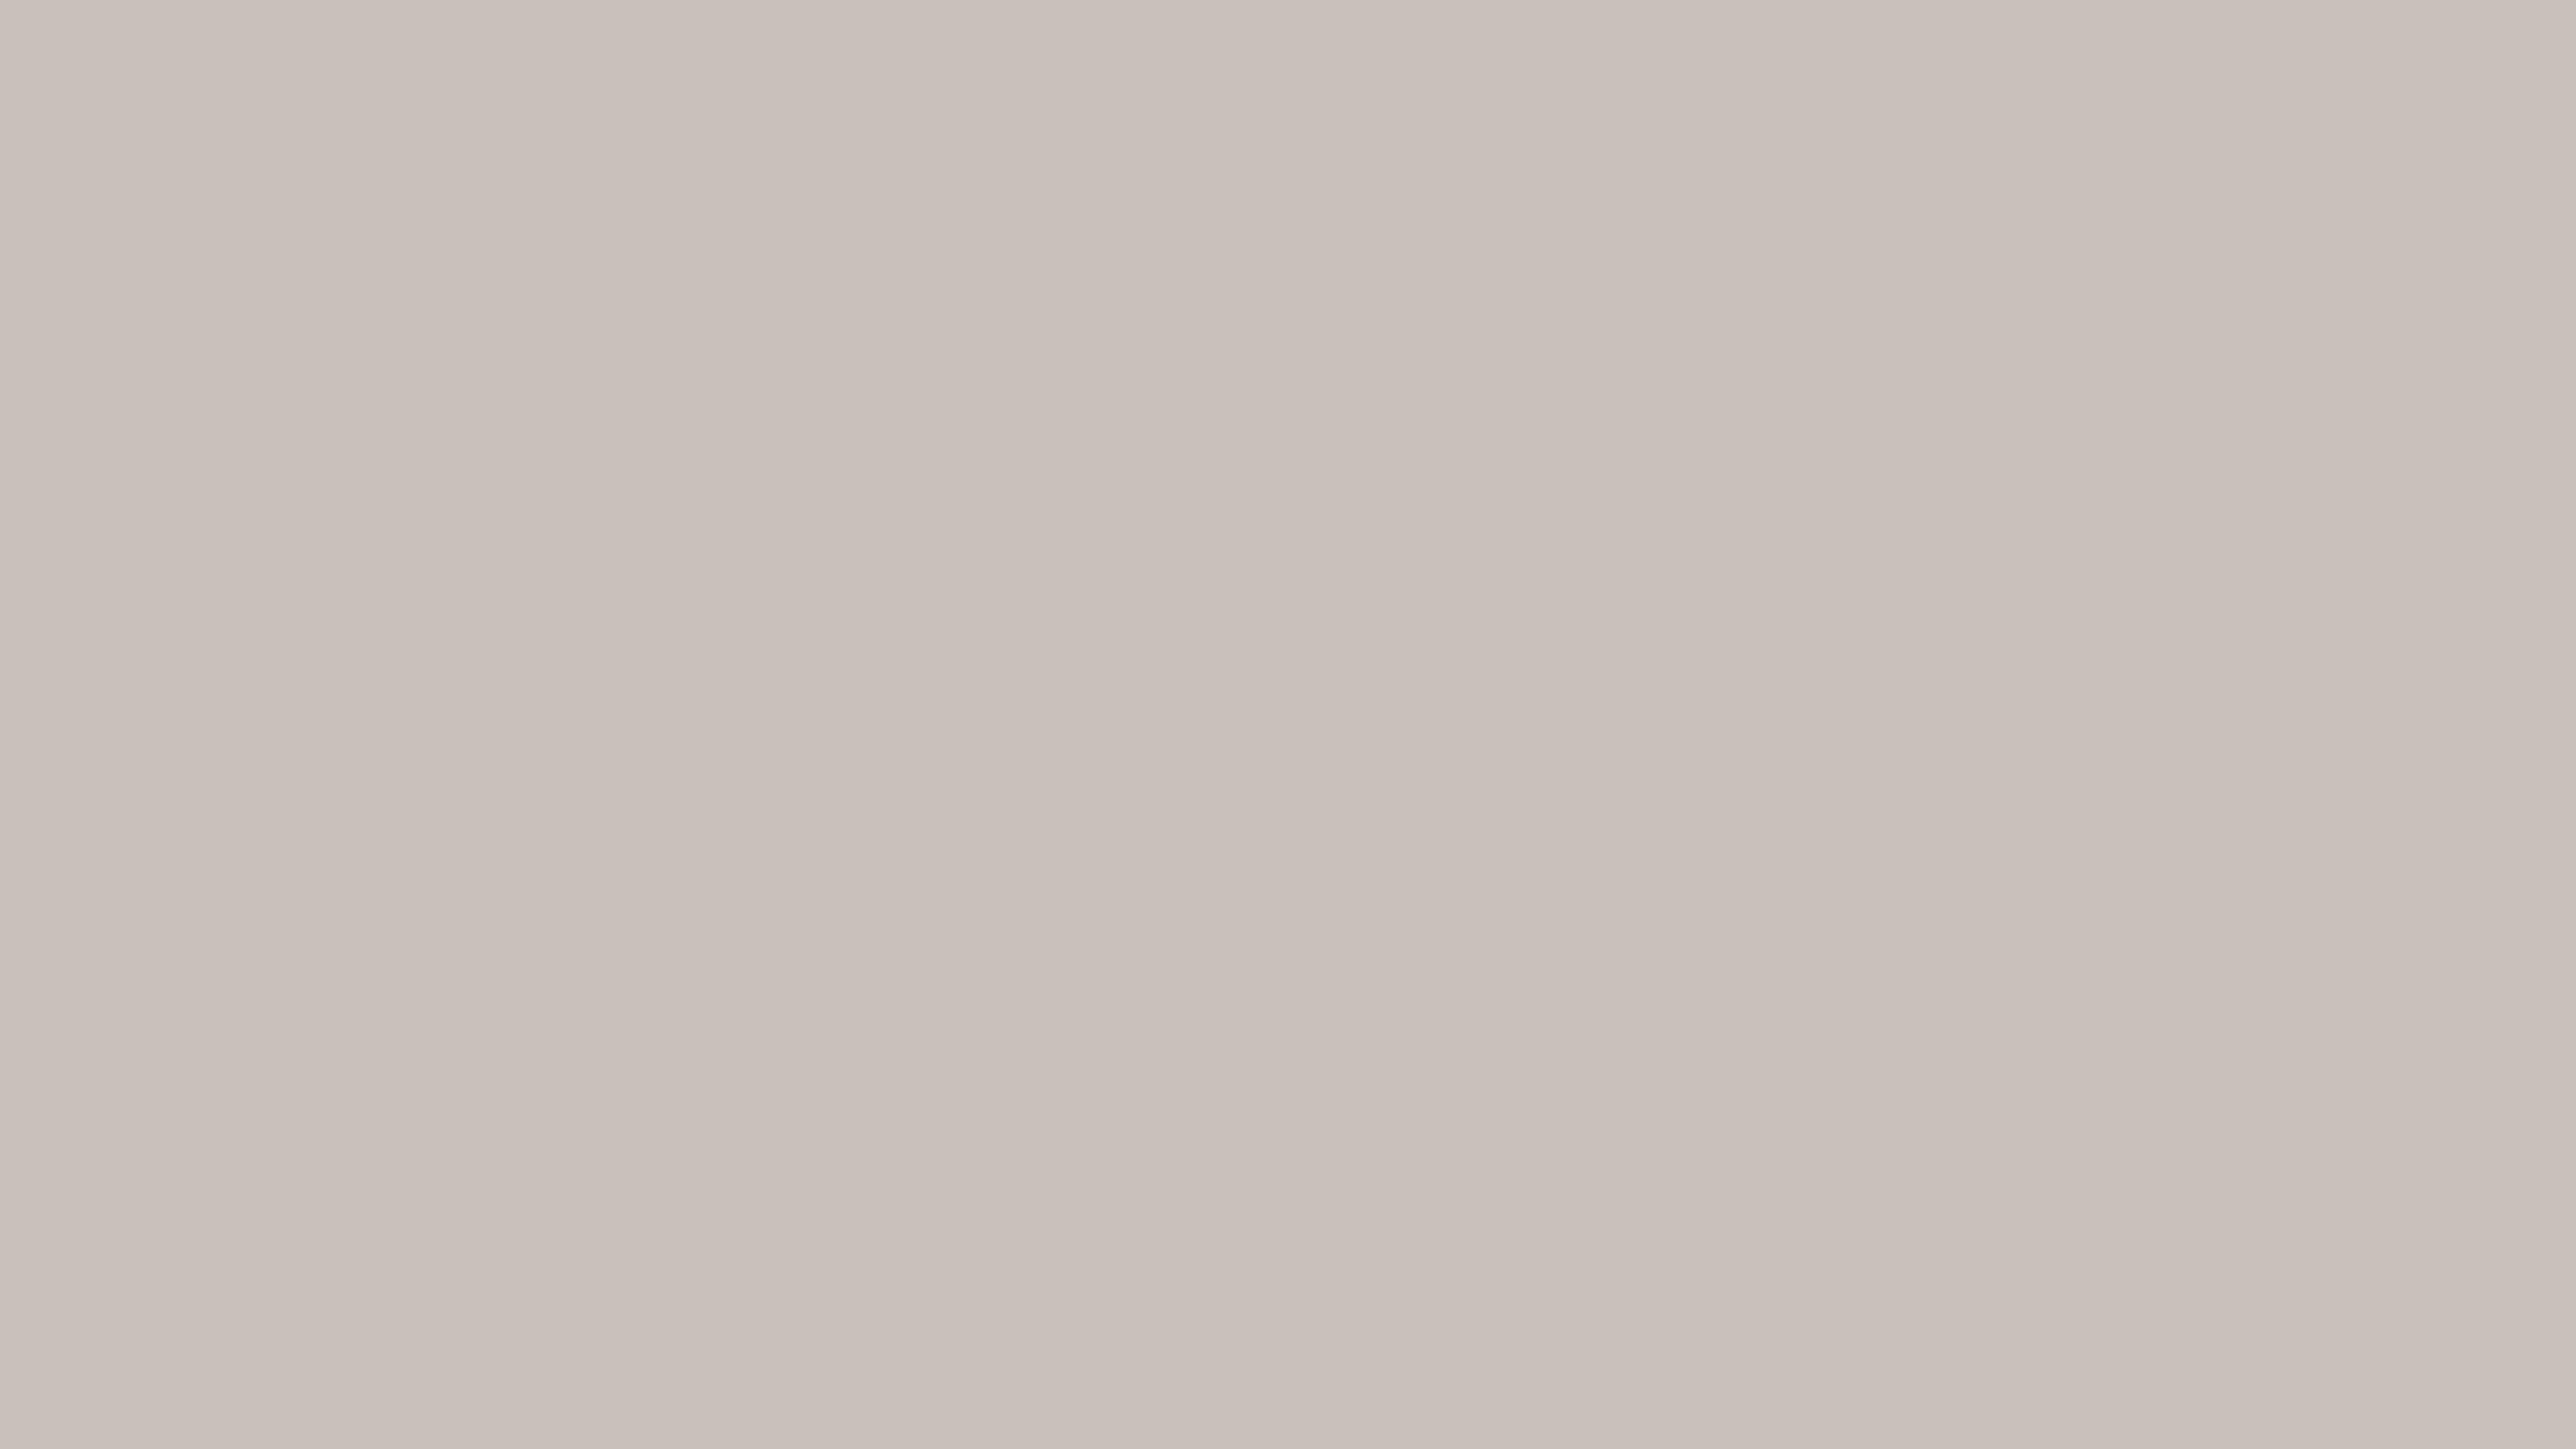 Pale Silver Solid Color Background Wallpaper [5120x2880]